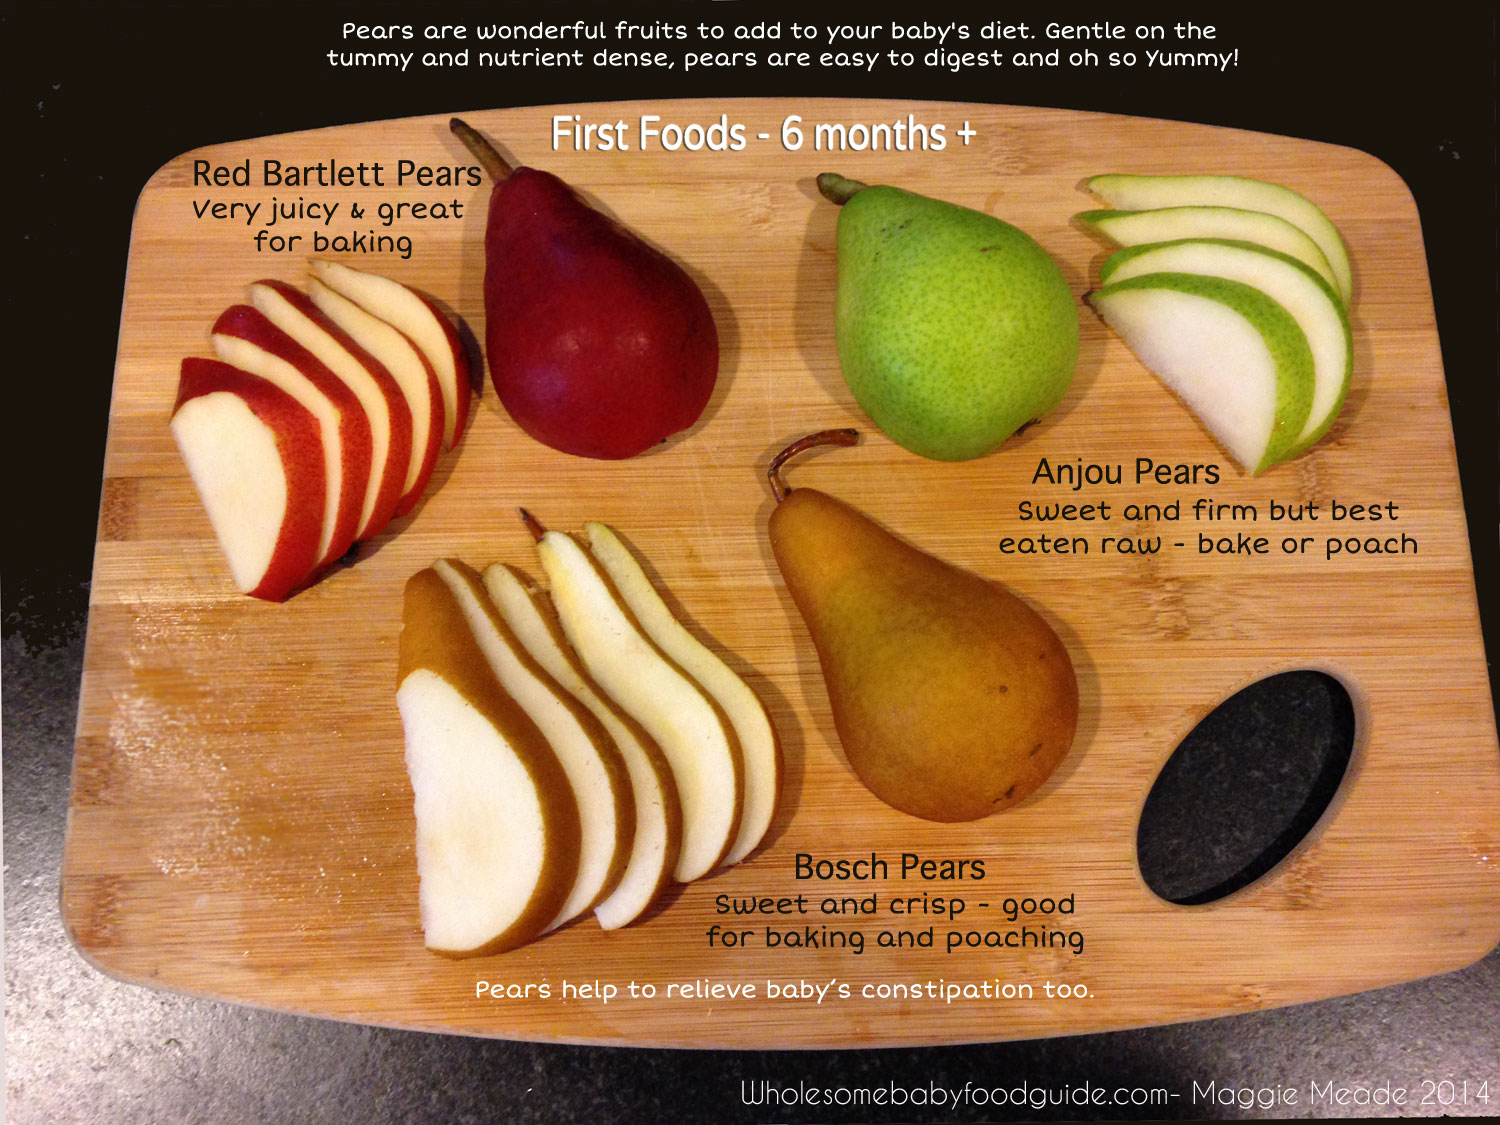 Pears are a great First Food for babies. They are loaded with fiber, Vitamin C, Vitamin A and even Folate. Babies love the taste and the texture of pears.